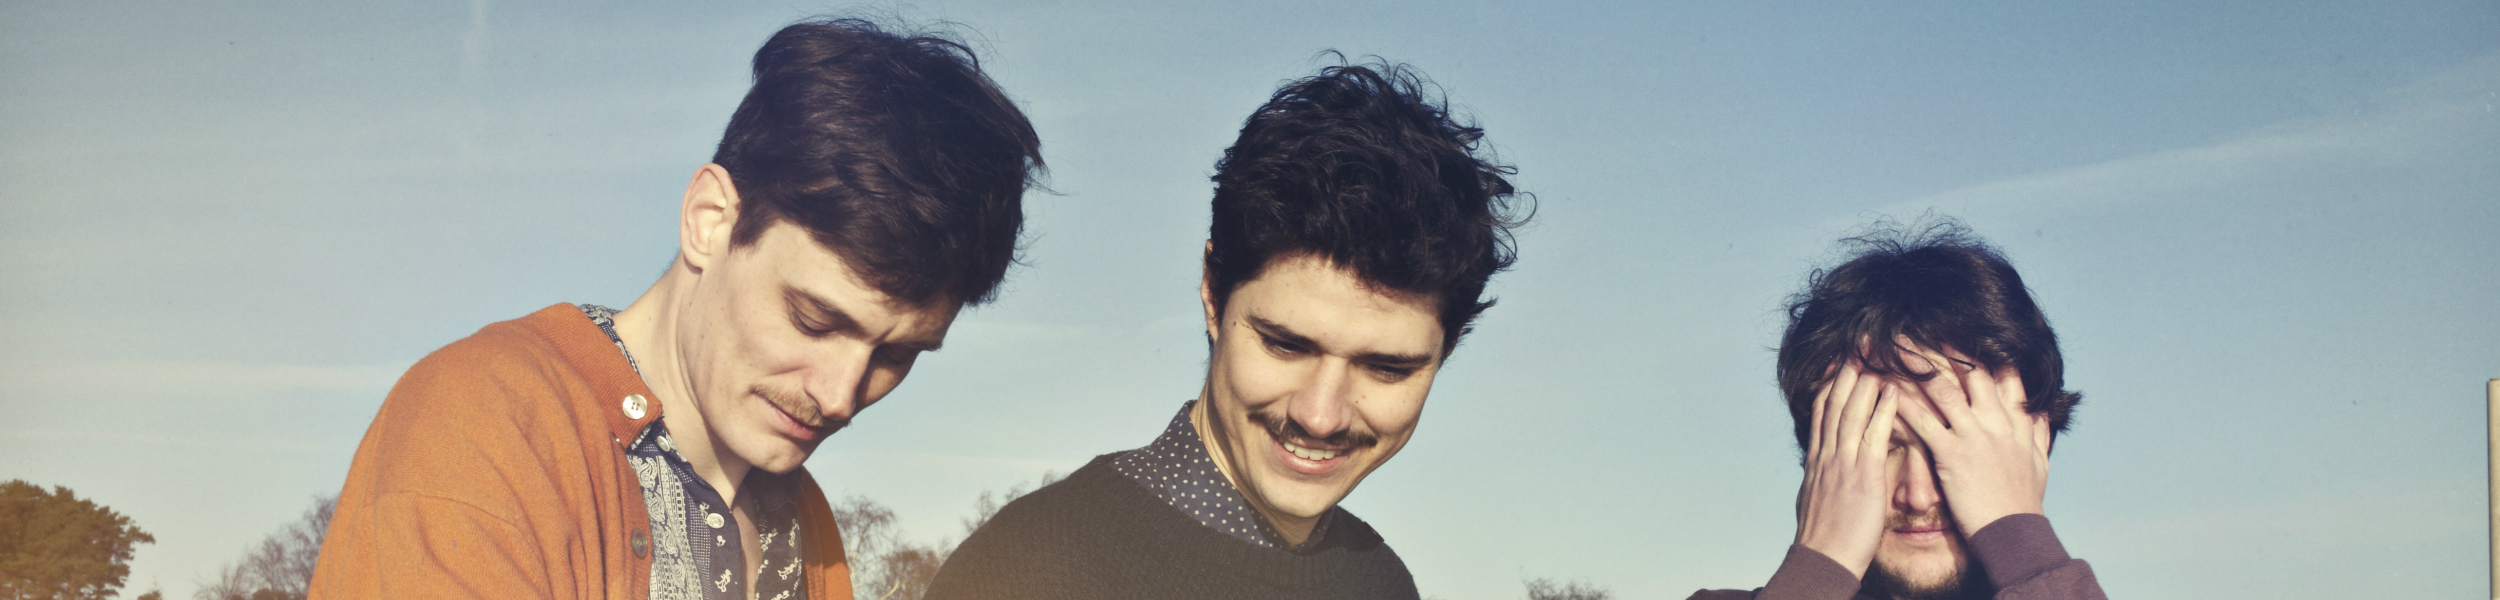 Efterklang - Efterklang Share New Song, 'Apples'